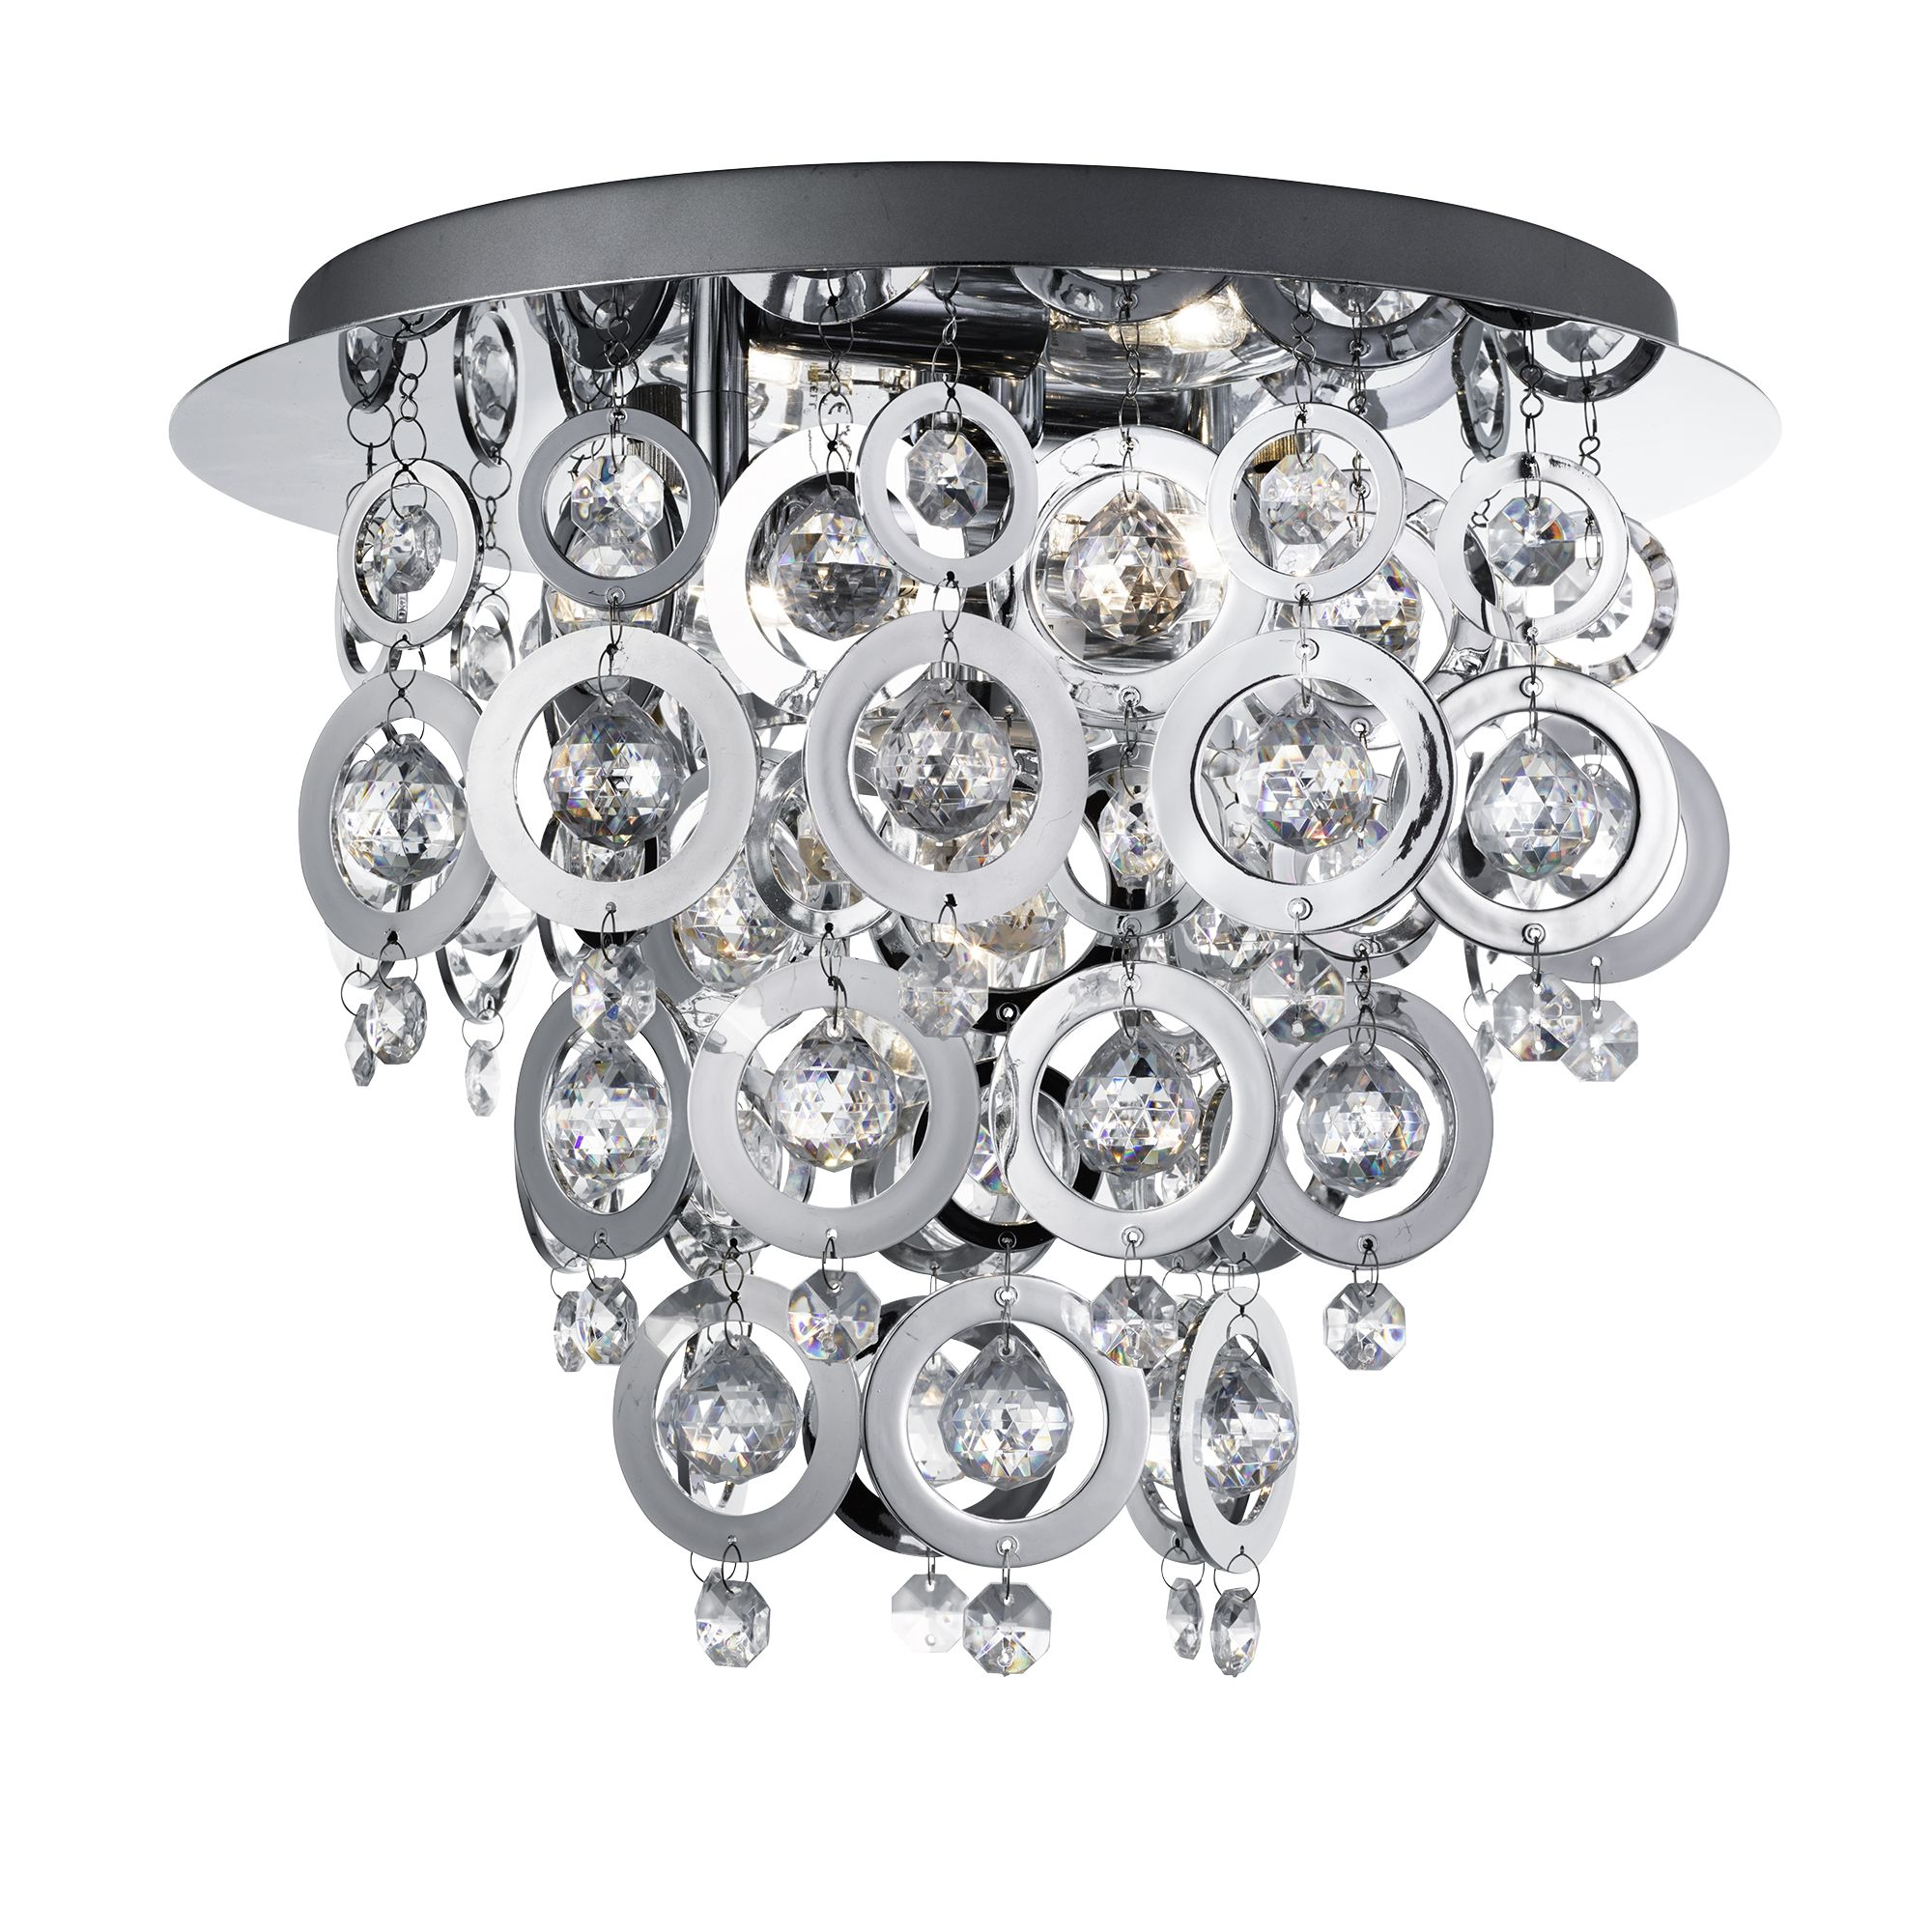 Nova Chrome 3 Light Fitting With Chrome Rings & Clear Acrylic Inserts